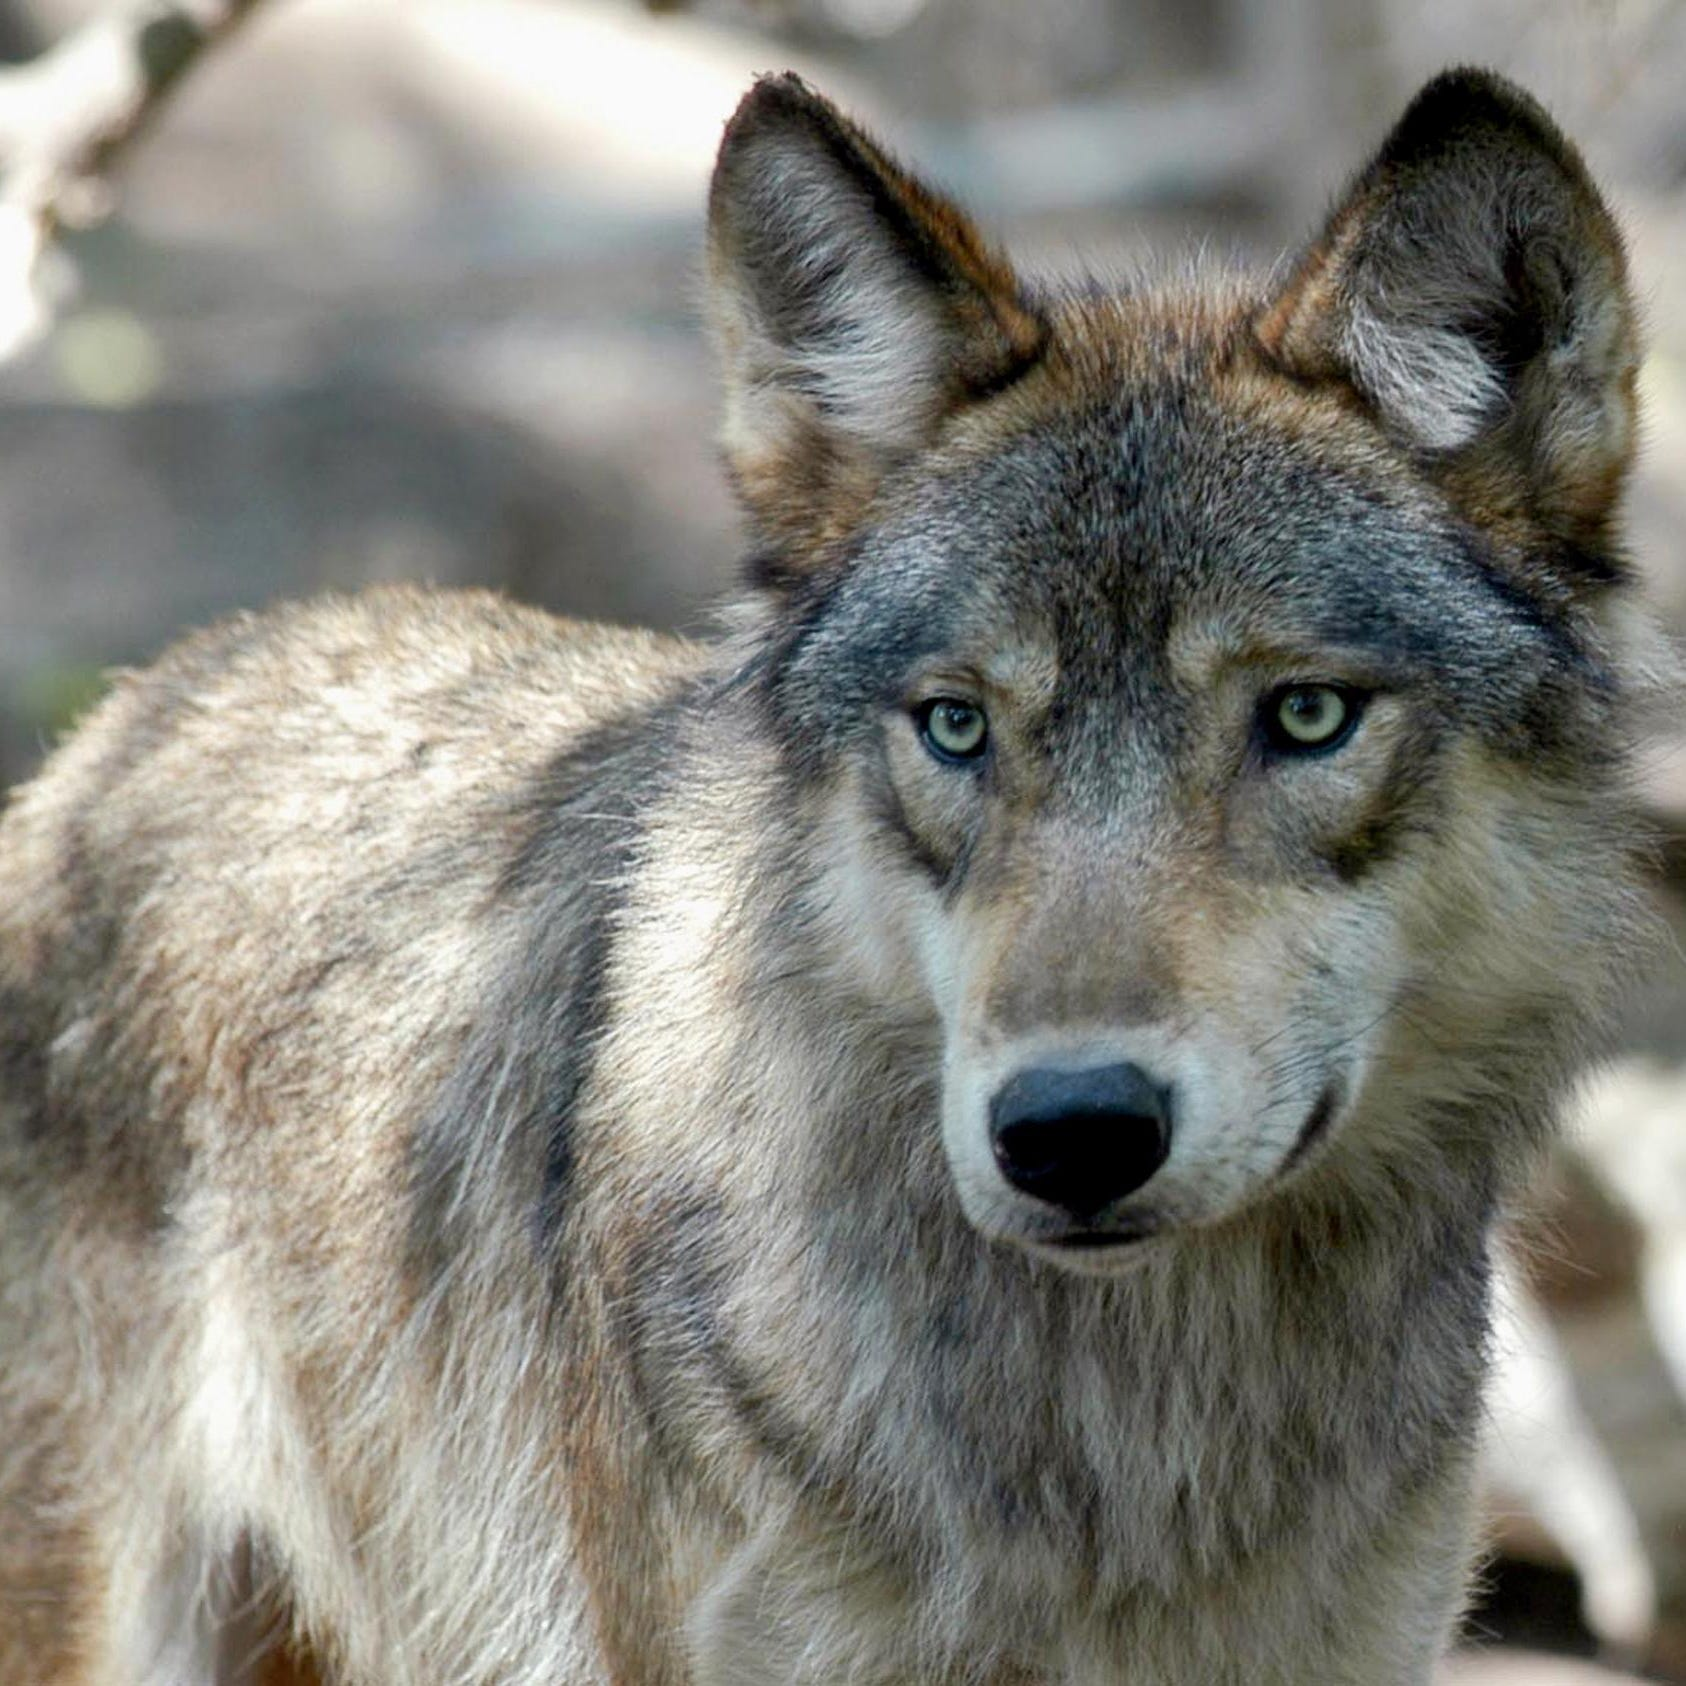 Government's motivation questioned in Michigan wolf killing